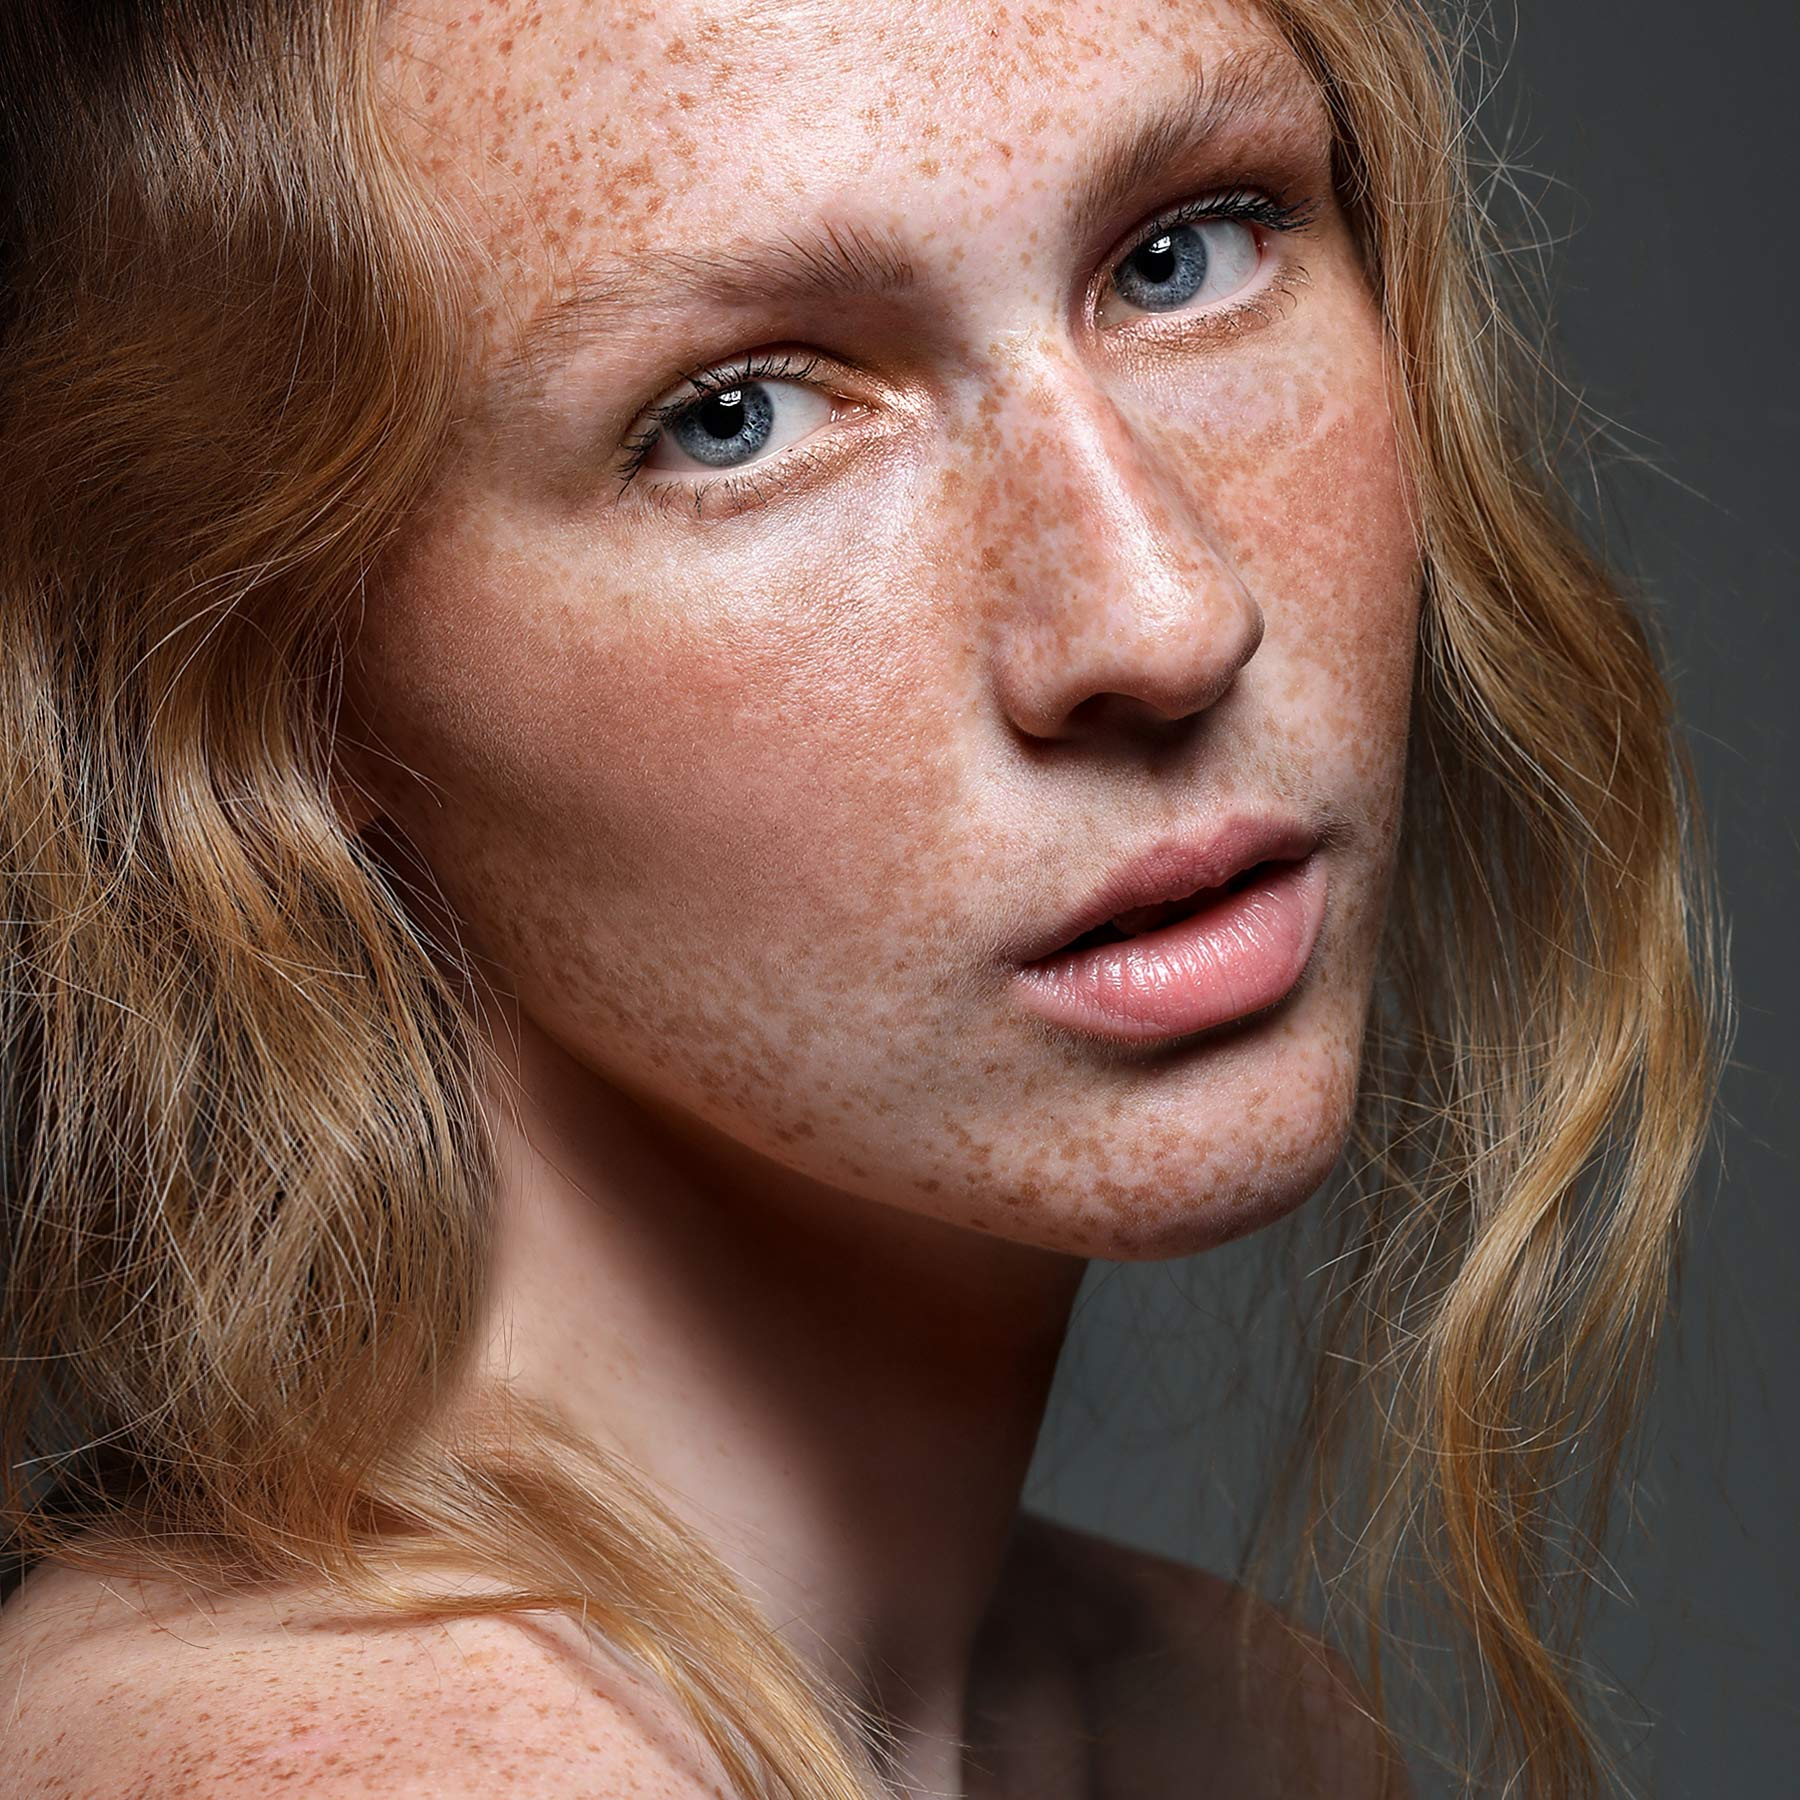 beauty-makeup-photographer-fashion-photogarphers-london-toronto-ontario-paula-tizzard-florencia-taylor-freckles-clean-beauty-2